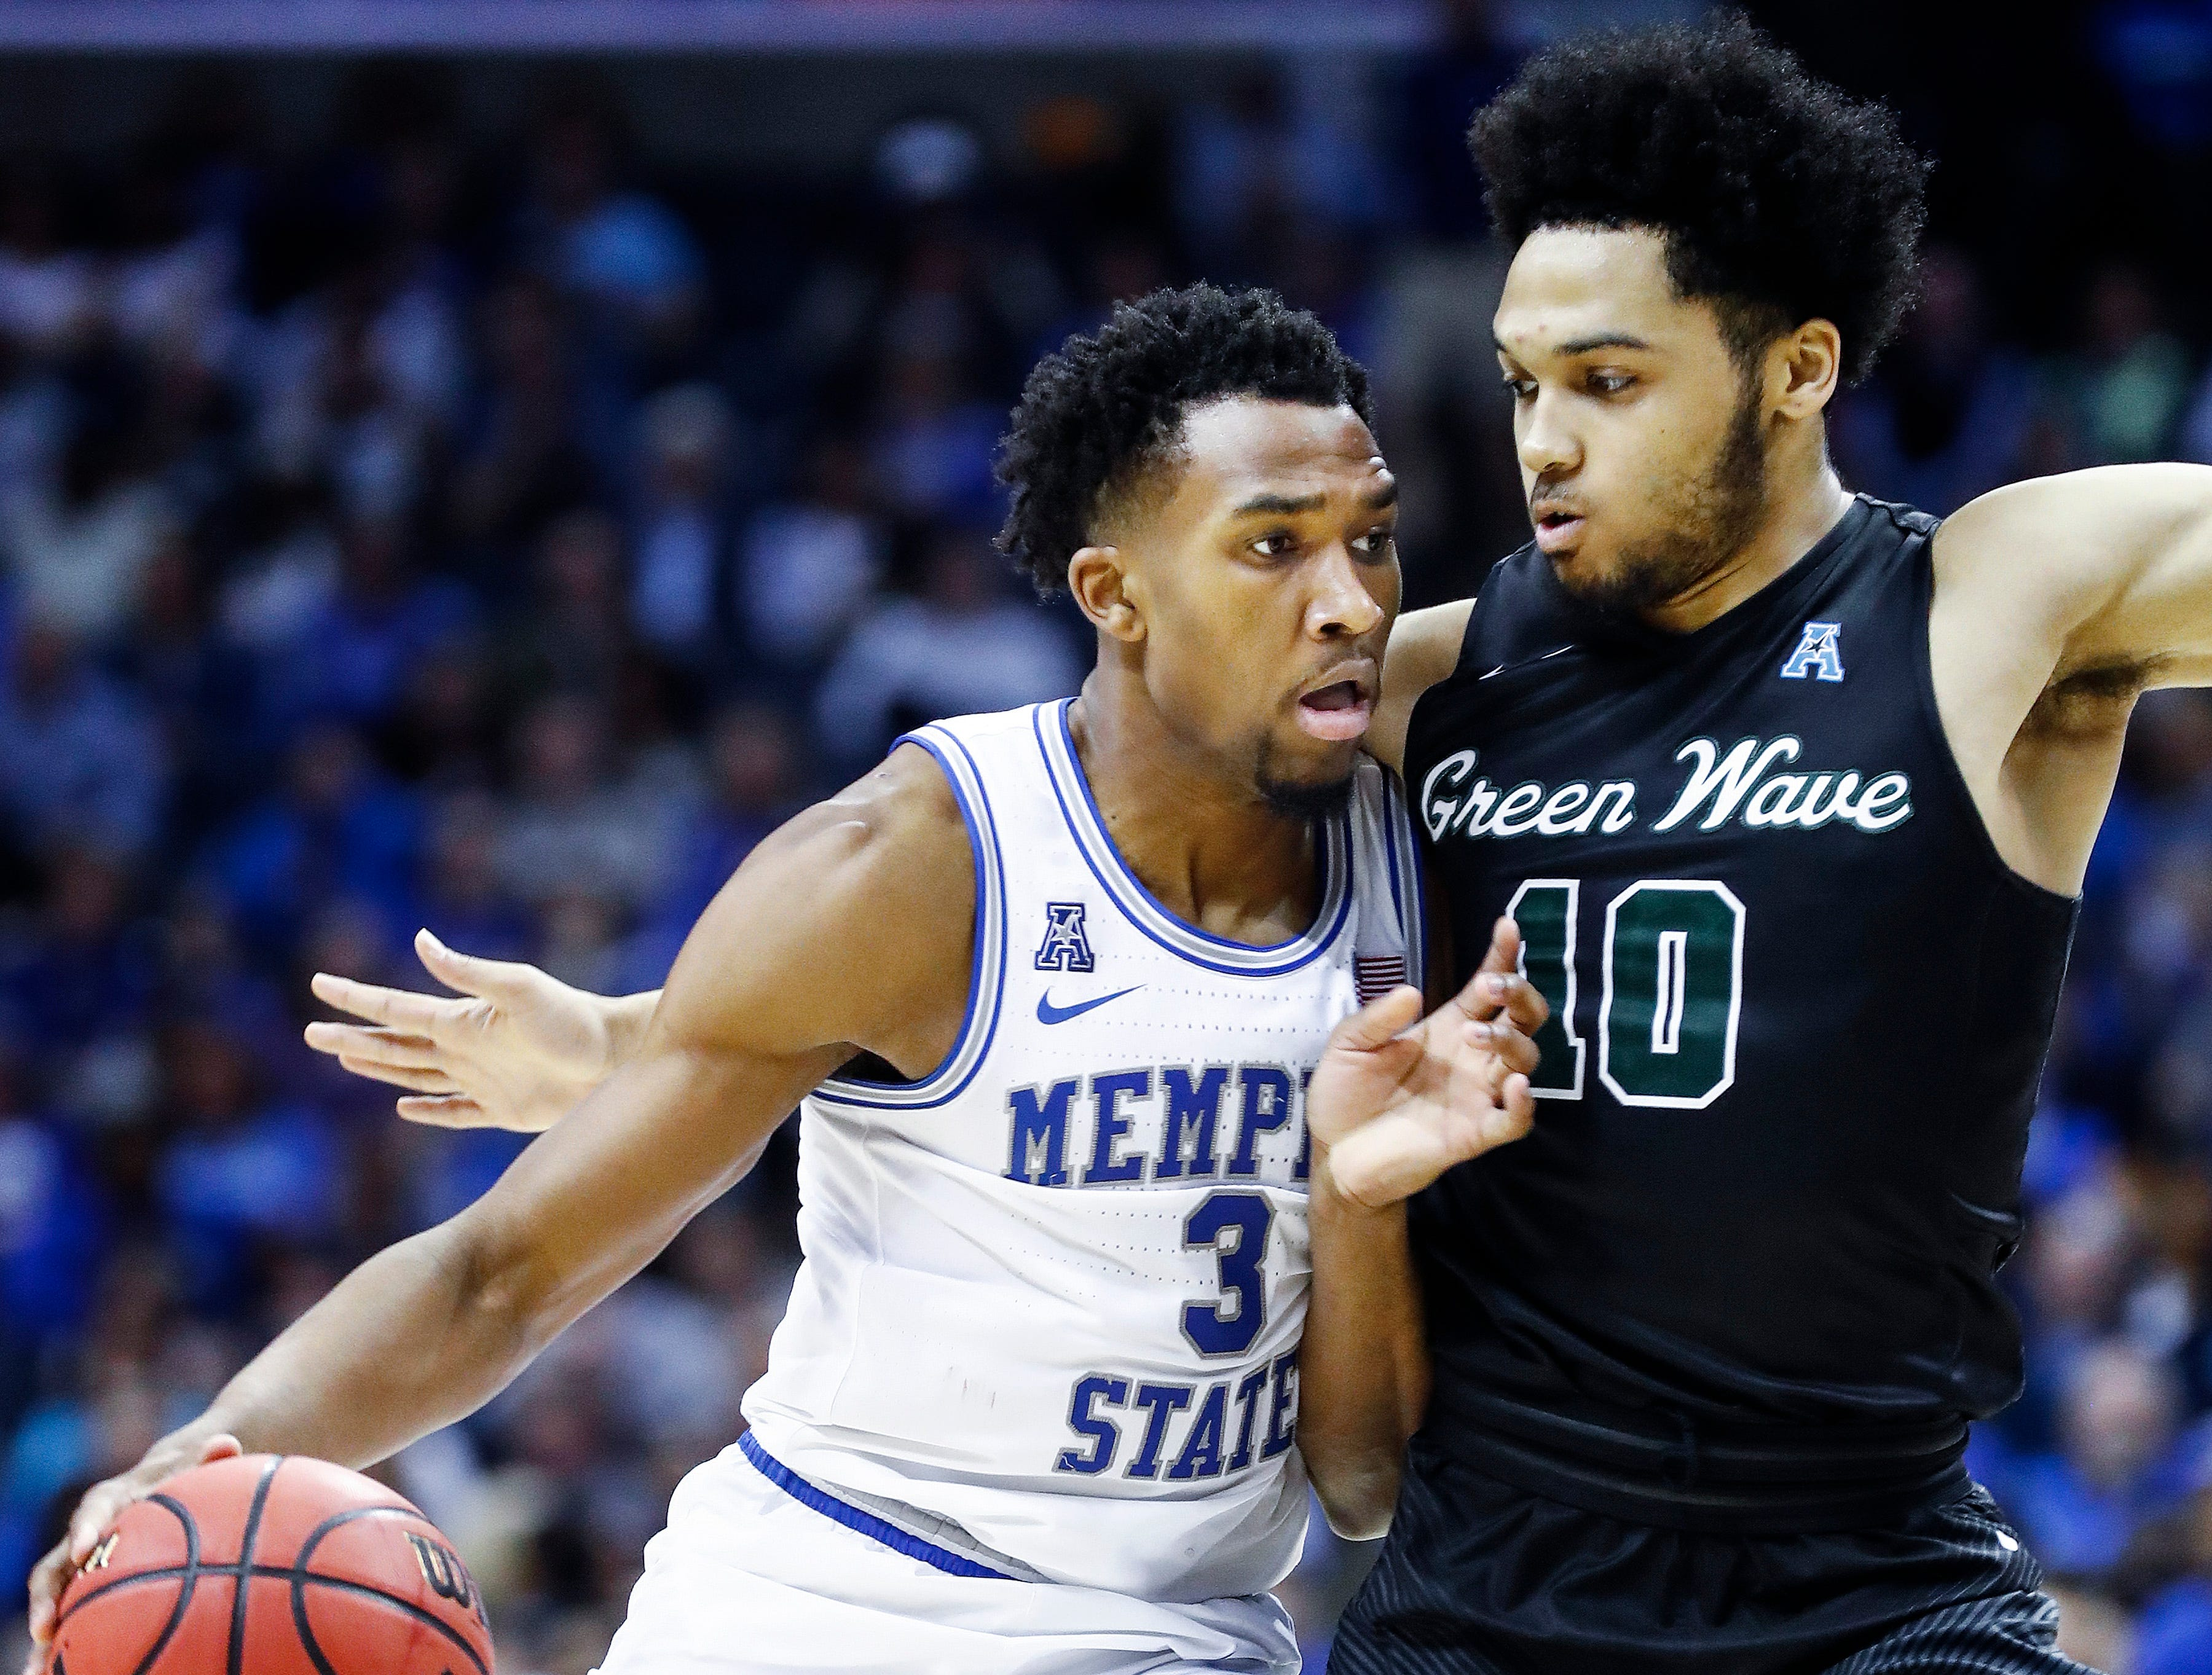 Memphis guard Jeremiah Martin (left) drives the lane against Tulane defender Caleb Daniels (right) during action of their first round AAC Tournament game at the  FedExForum, Thursday, March 14, 2019.